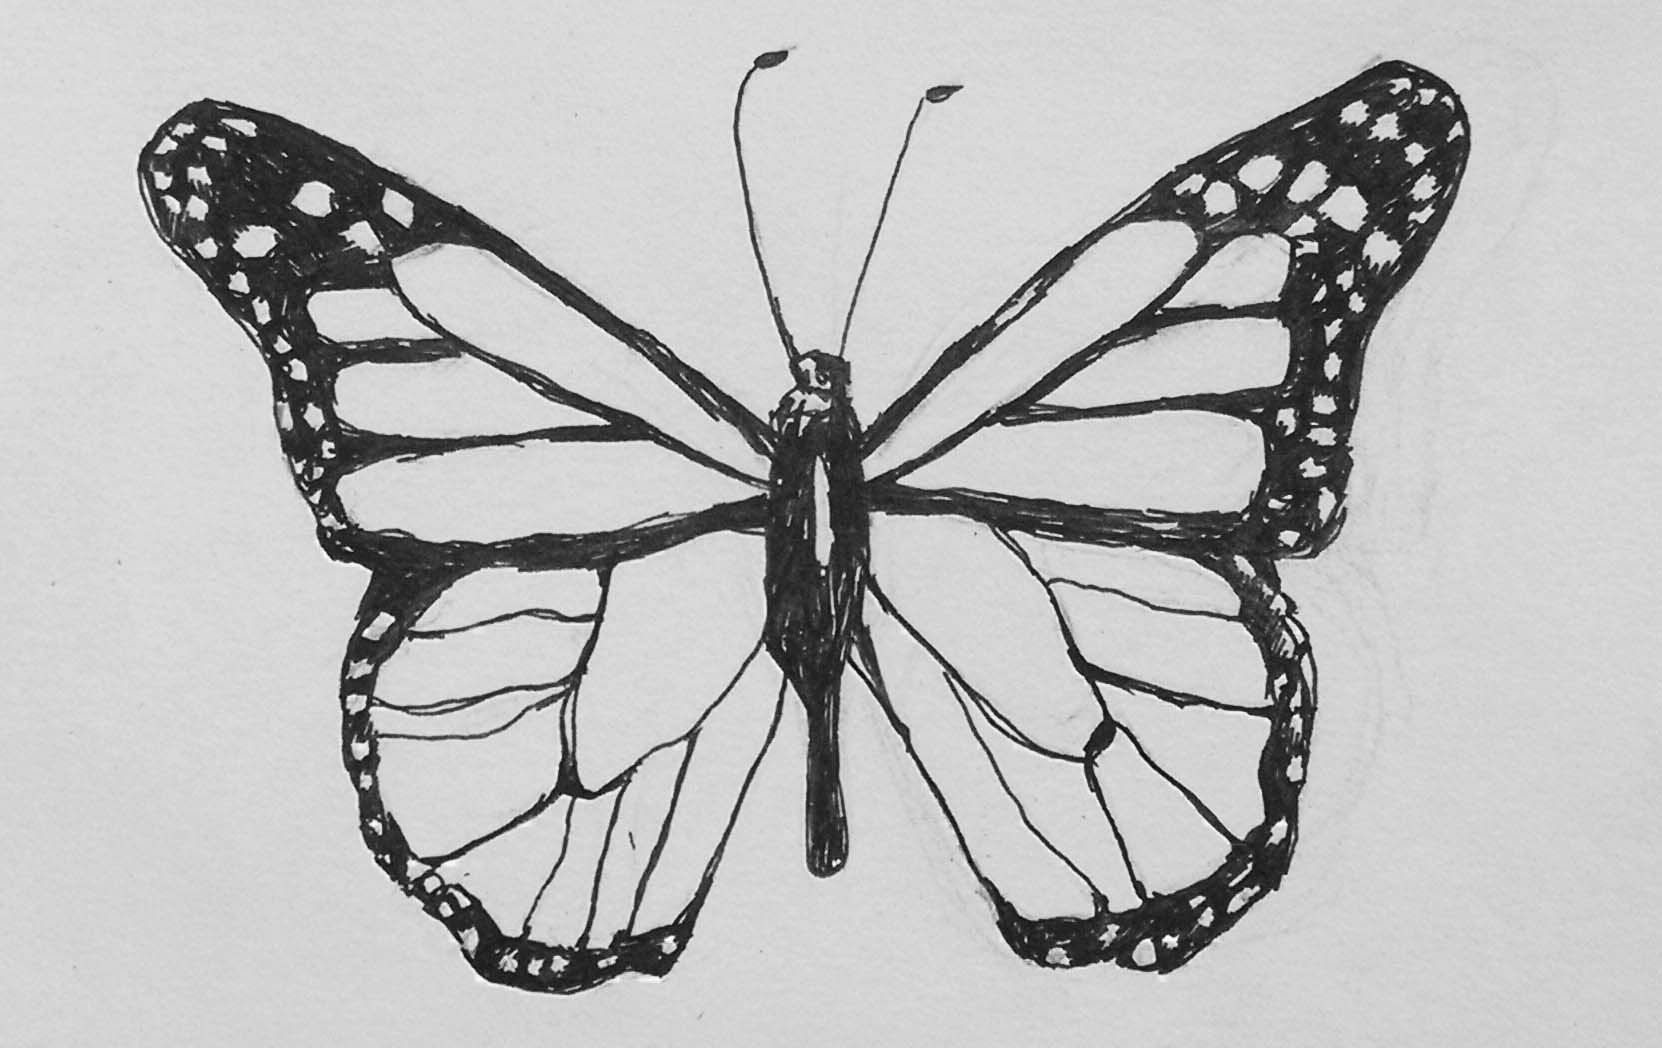 vanessa butterfly drawing images - HD1662×1048